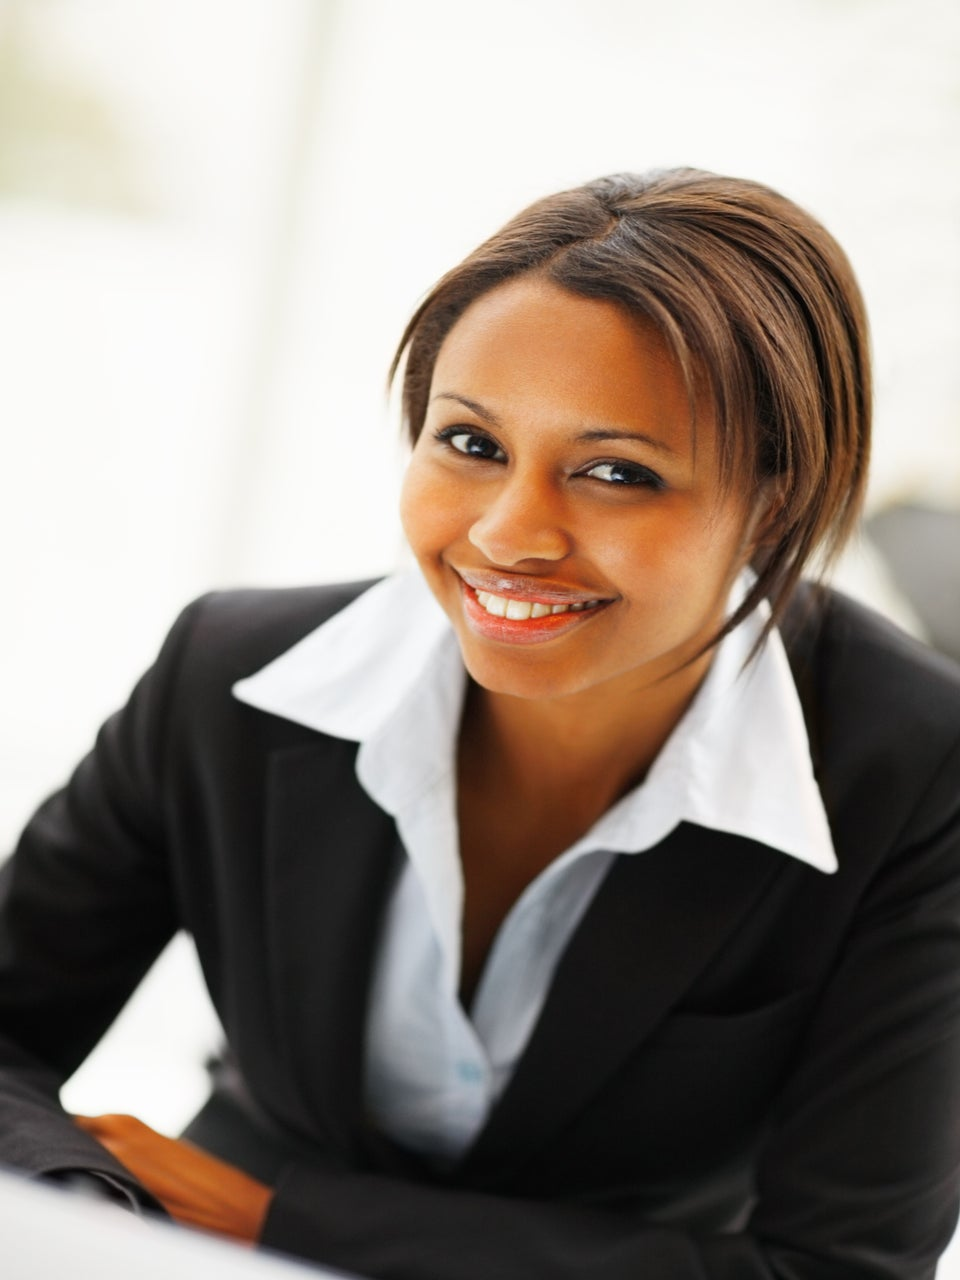 Tanisha's Tips: Are You Overqualified for the Job?